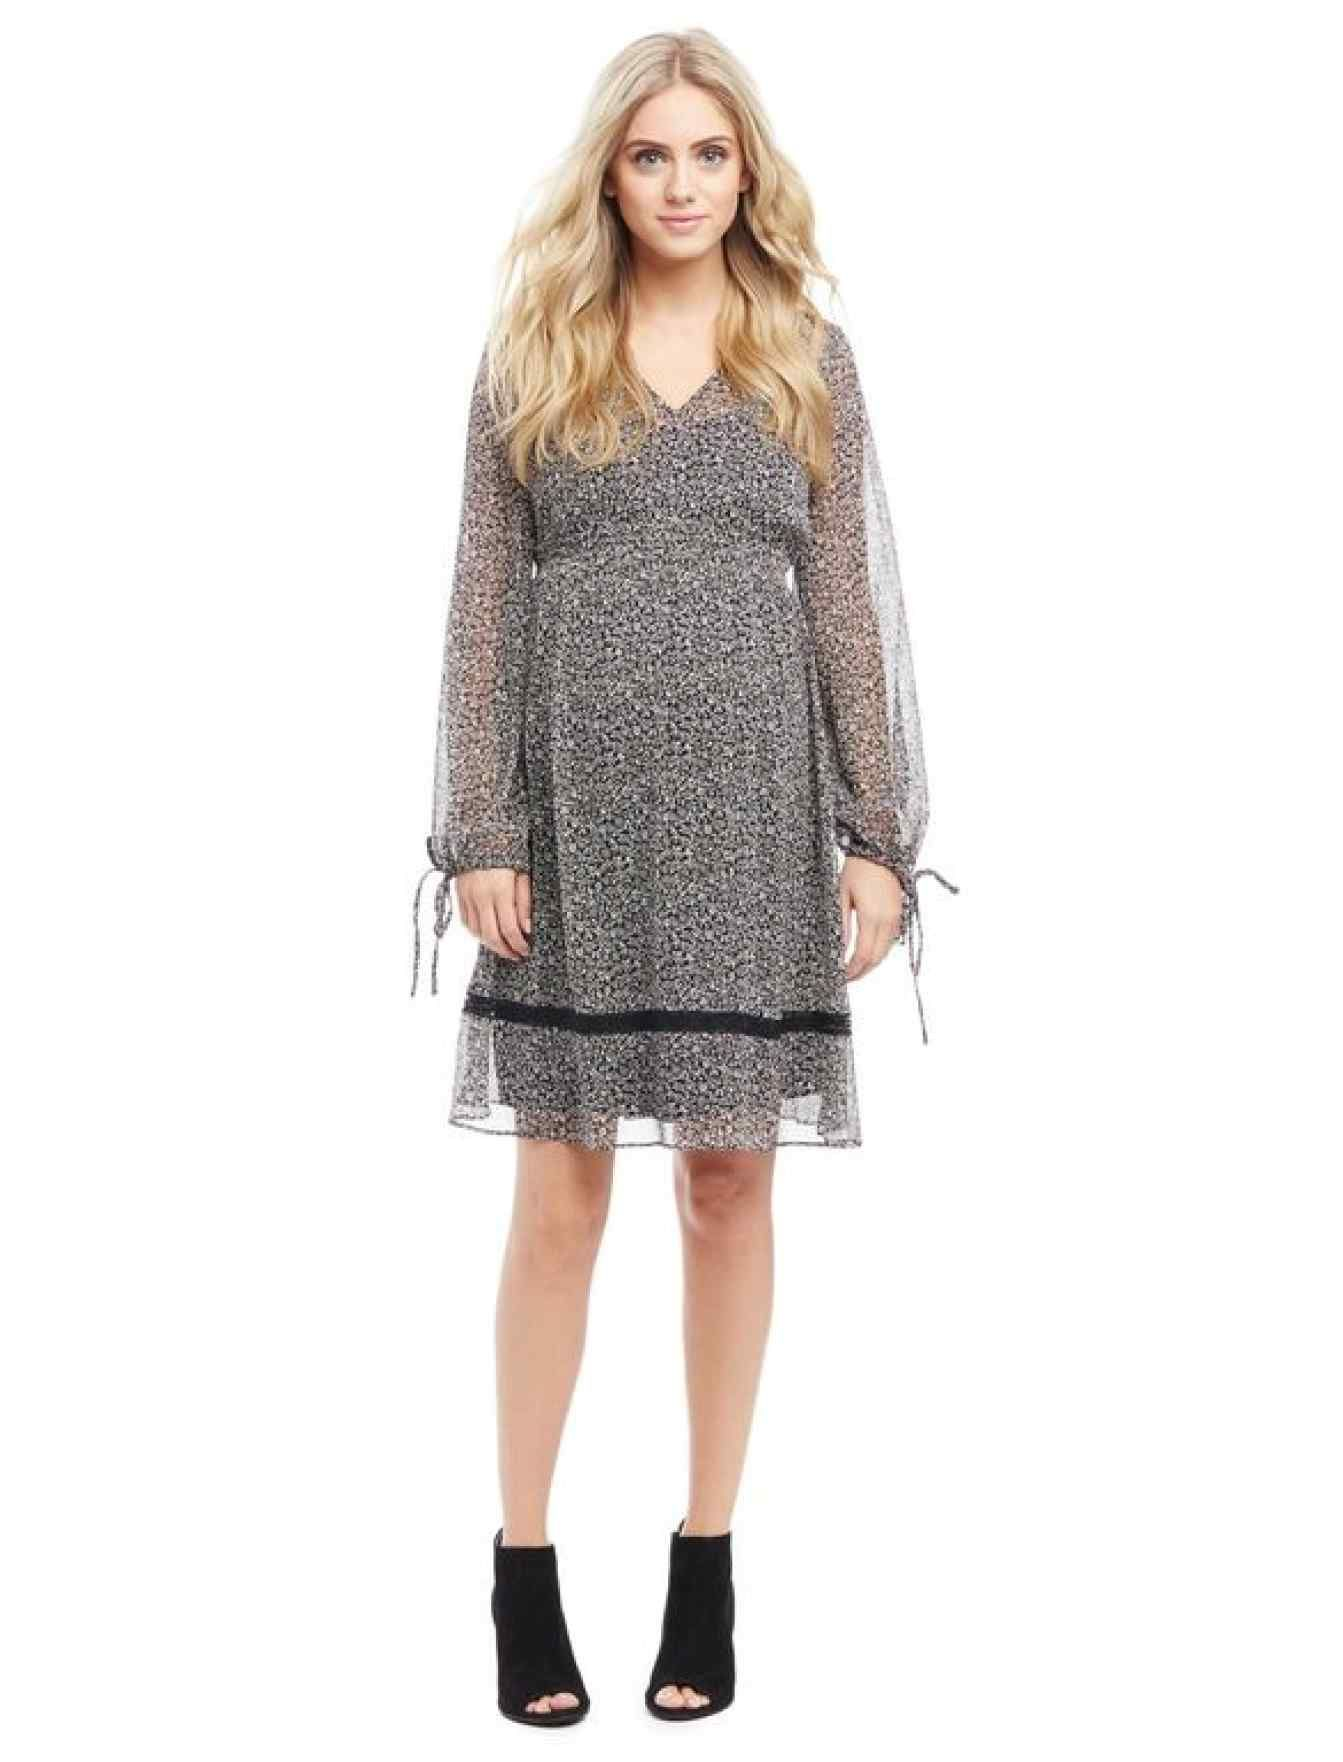 51622a93023a3 Motherhood Maternity is having a warehouse sale—up to 80% off ...